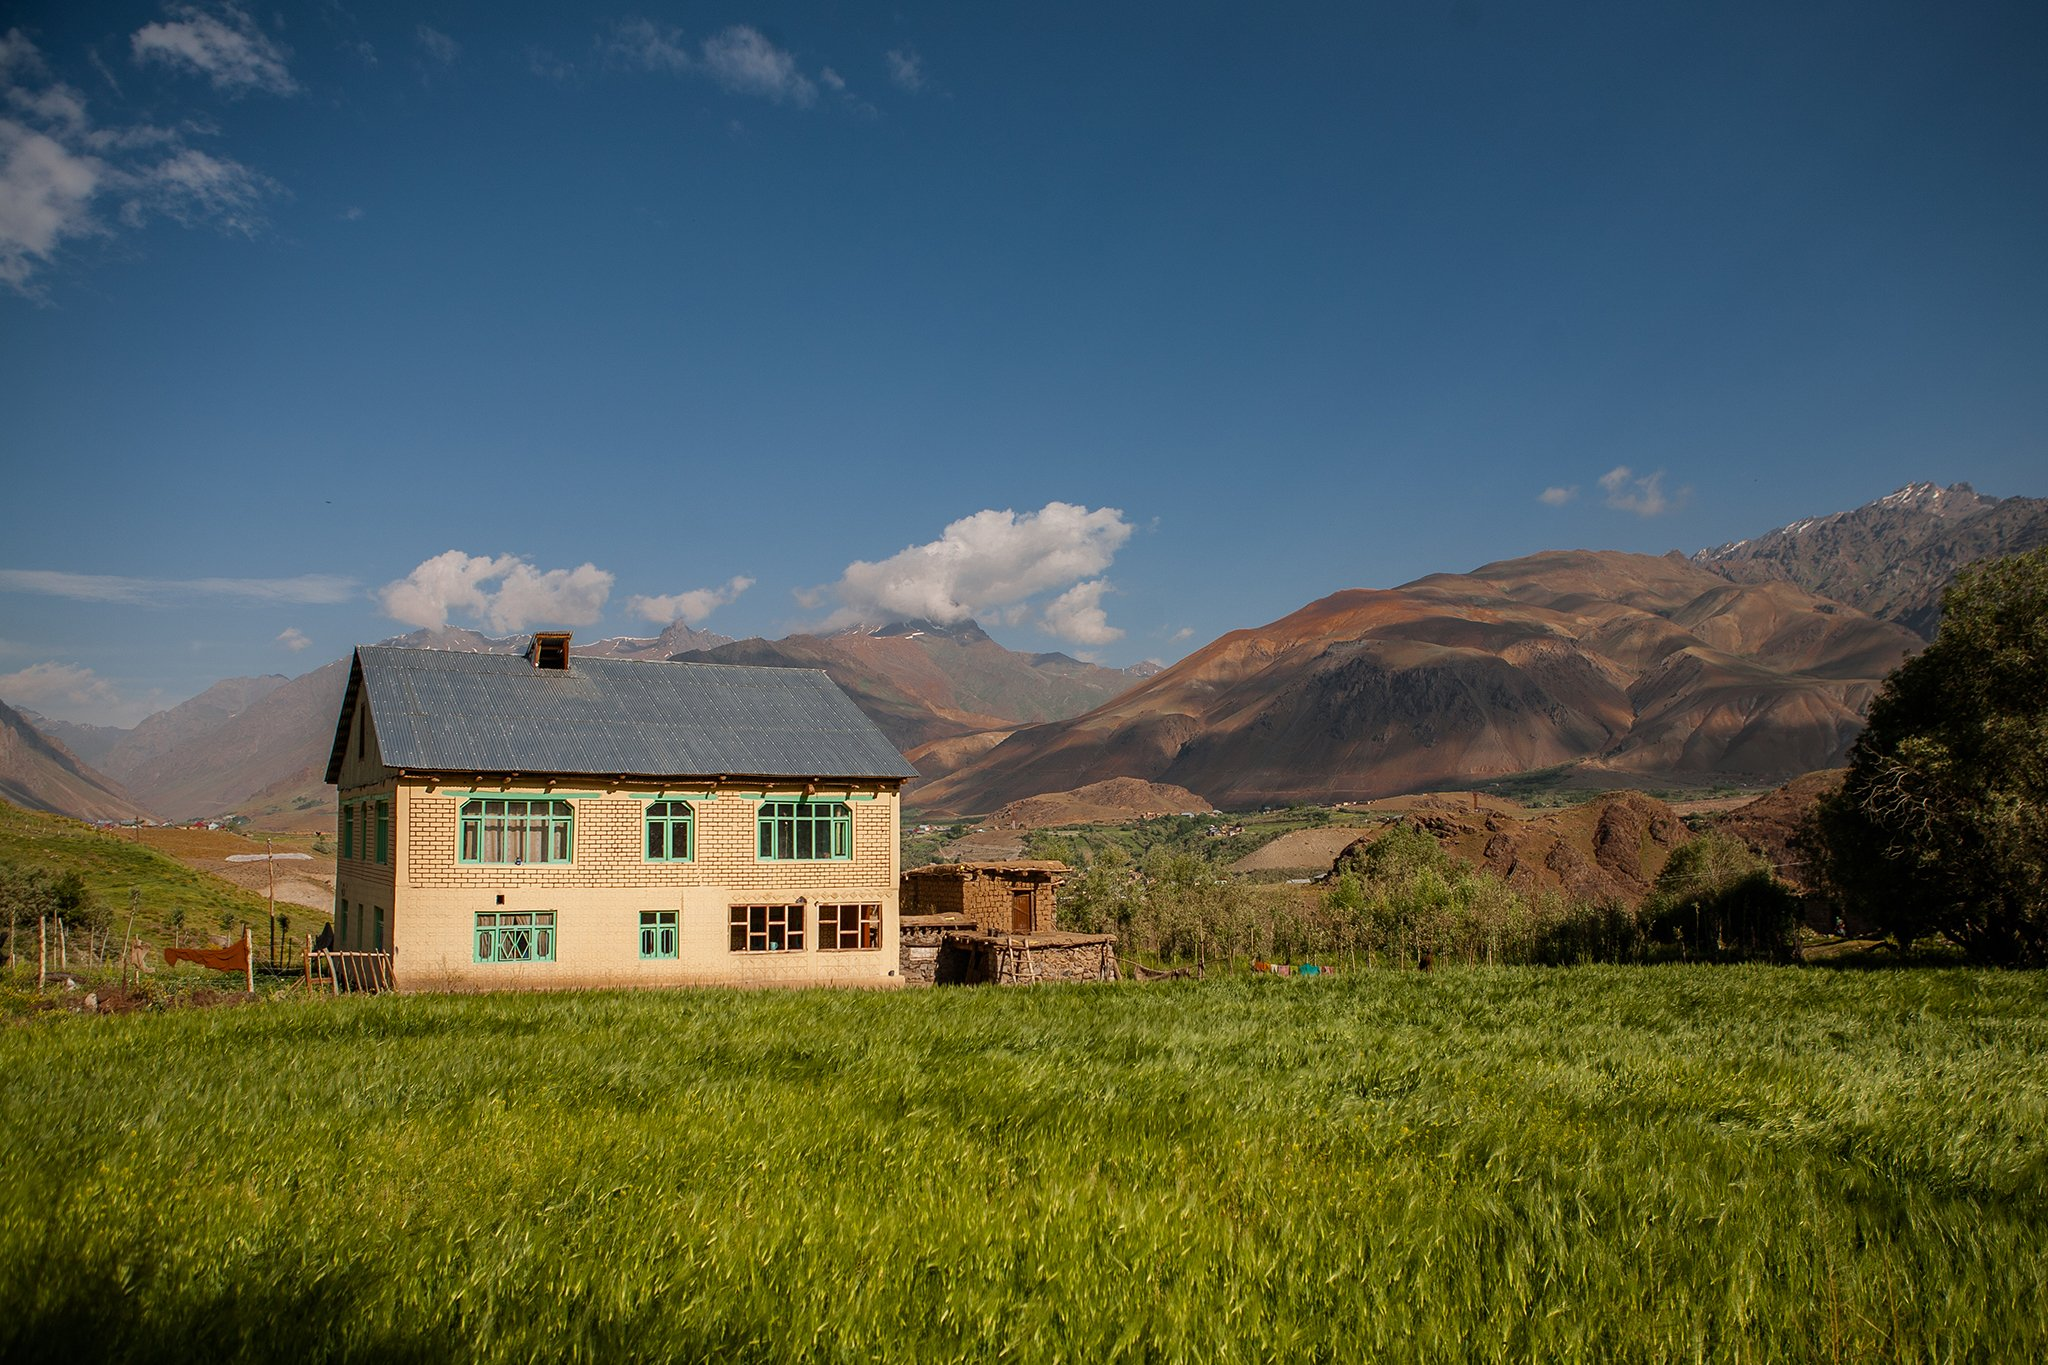 A beautiful house drenched in golden sunlight surrounded by barley fields and the barren Greater Himalayas in Dras.